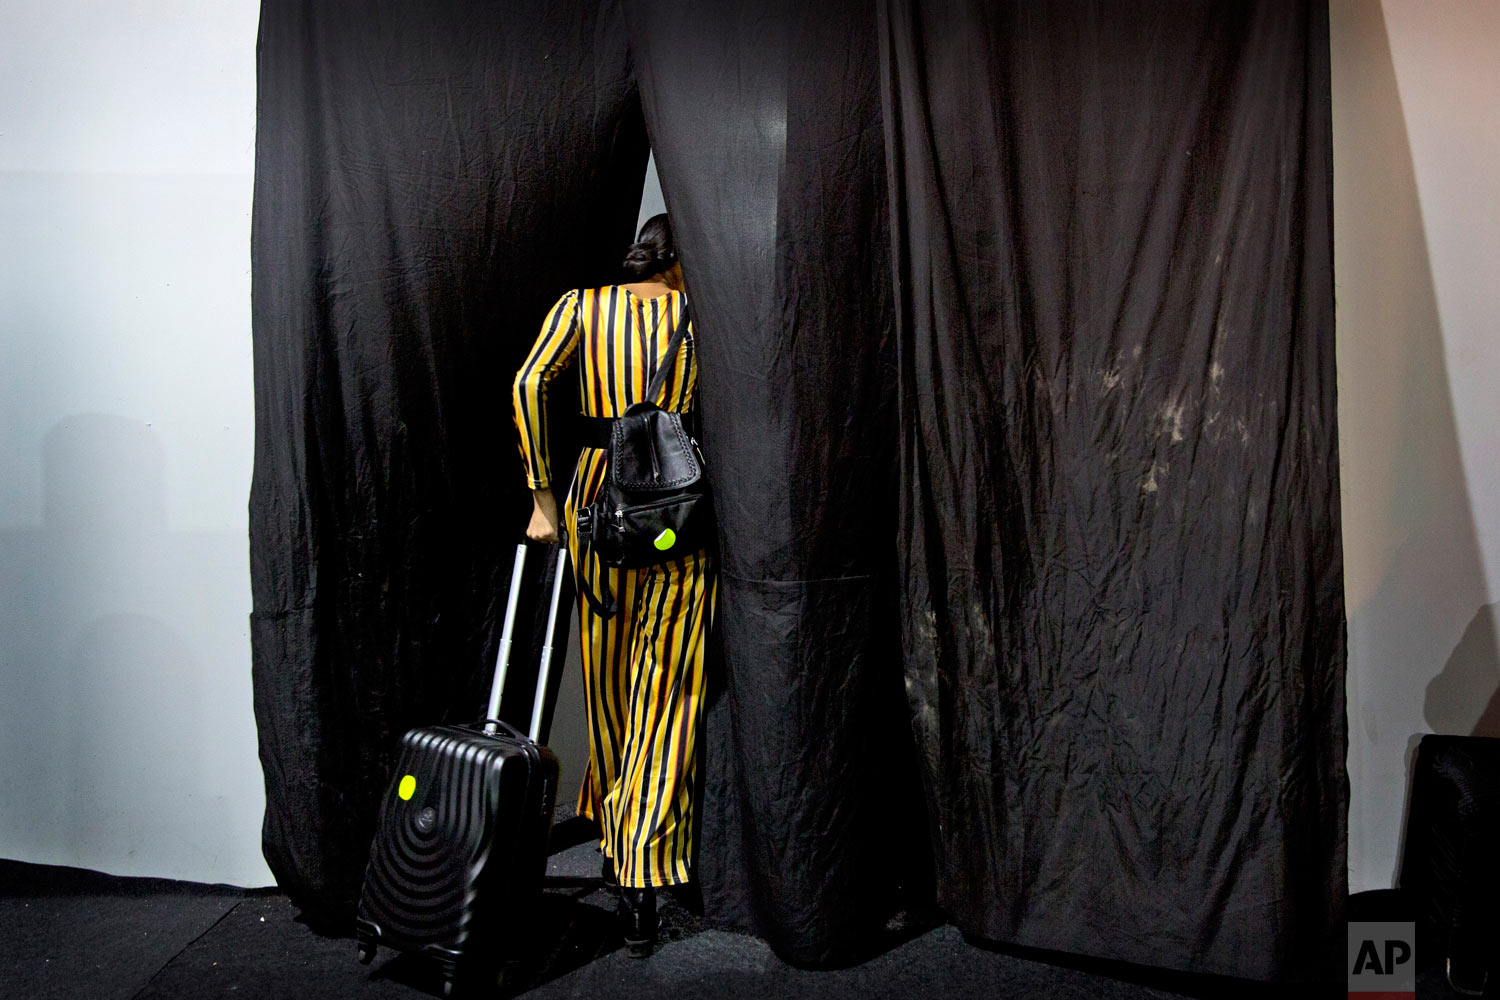 A model leaves the changing area after showcasing creations of Indian designers for the Lotus Makeup India Fashion Week, on Thursday, March 14, 2019, in New Delhi, India. (AP Photo/Manish Swarup)